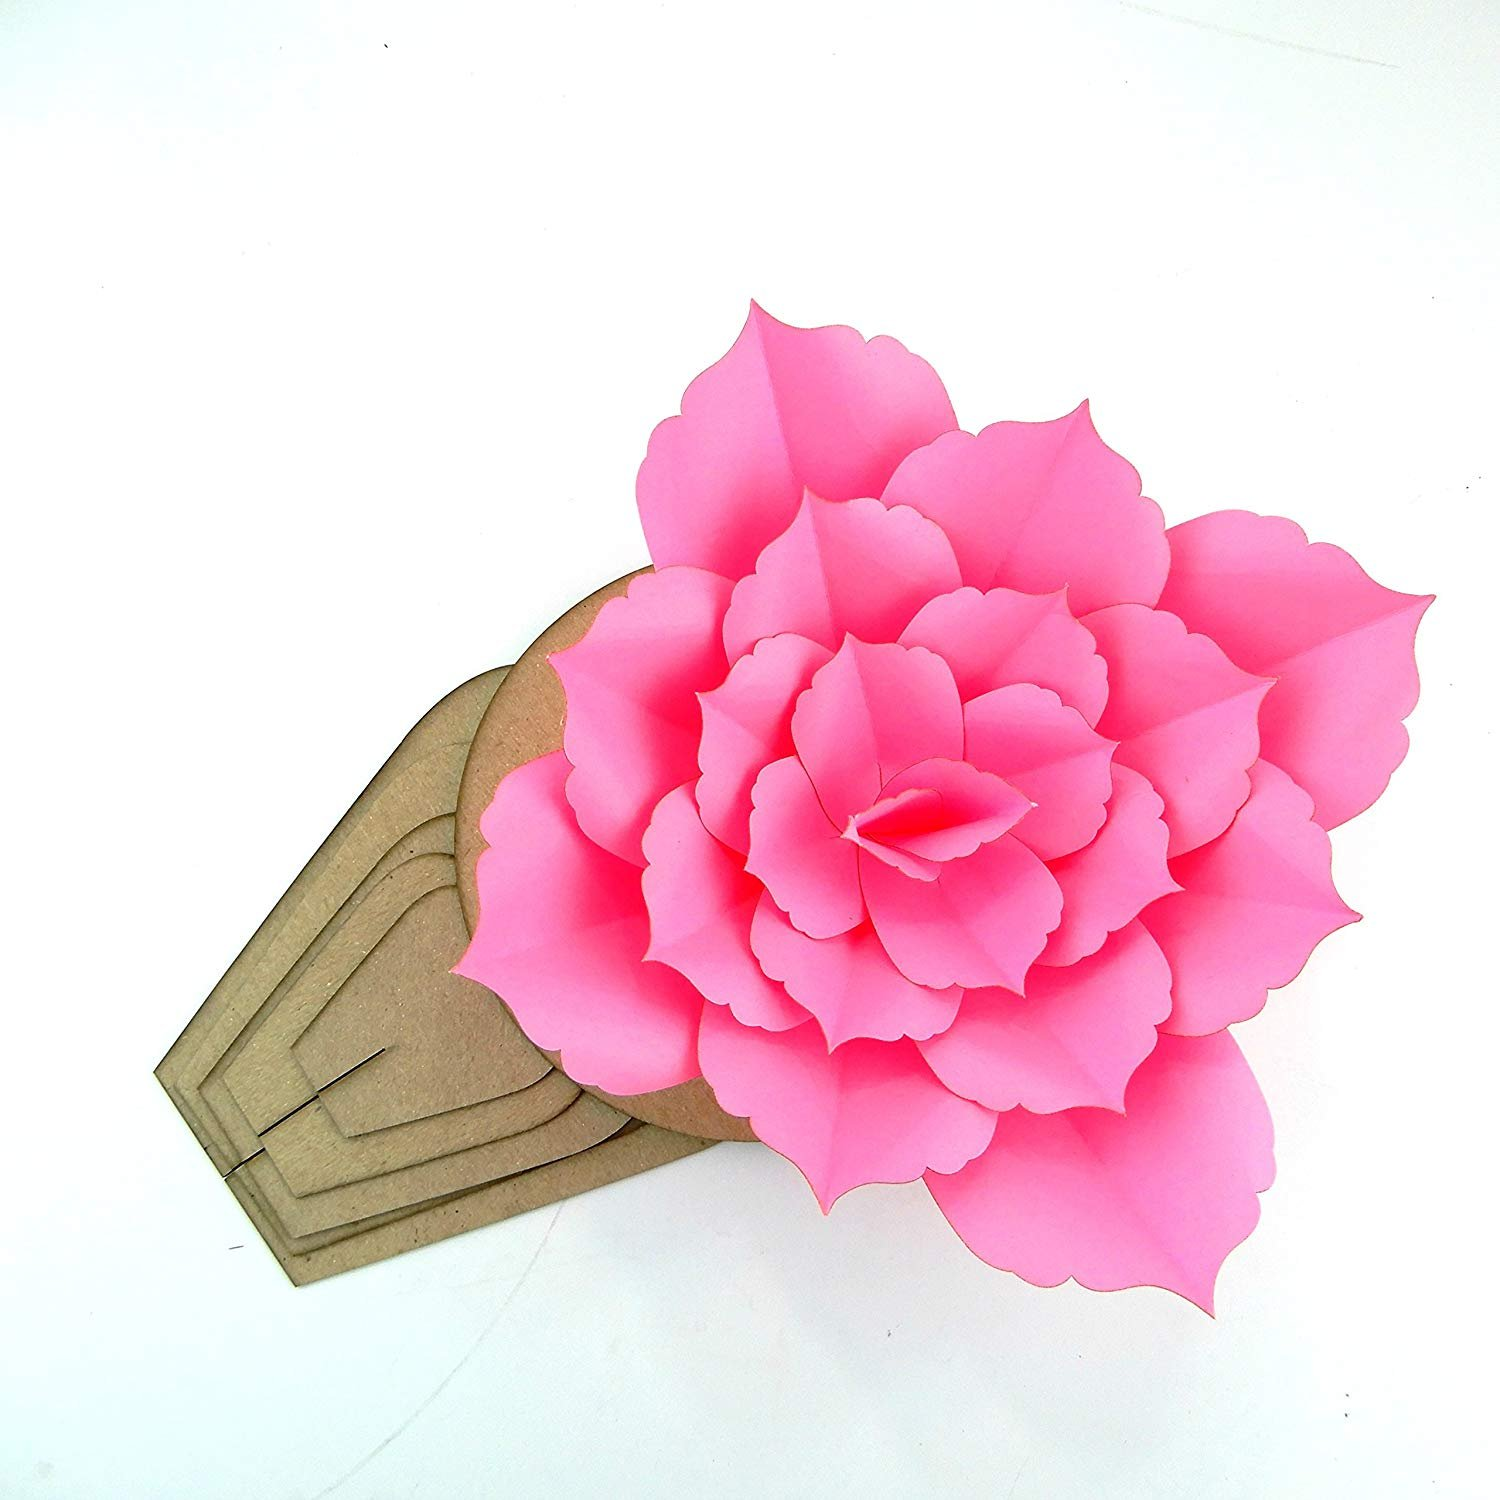 Paper Flower Template Kit Pattern DIY Make Your own Flower Backdrop Photo Booth Flower Decoration Card Stock Cladius